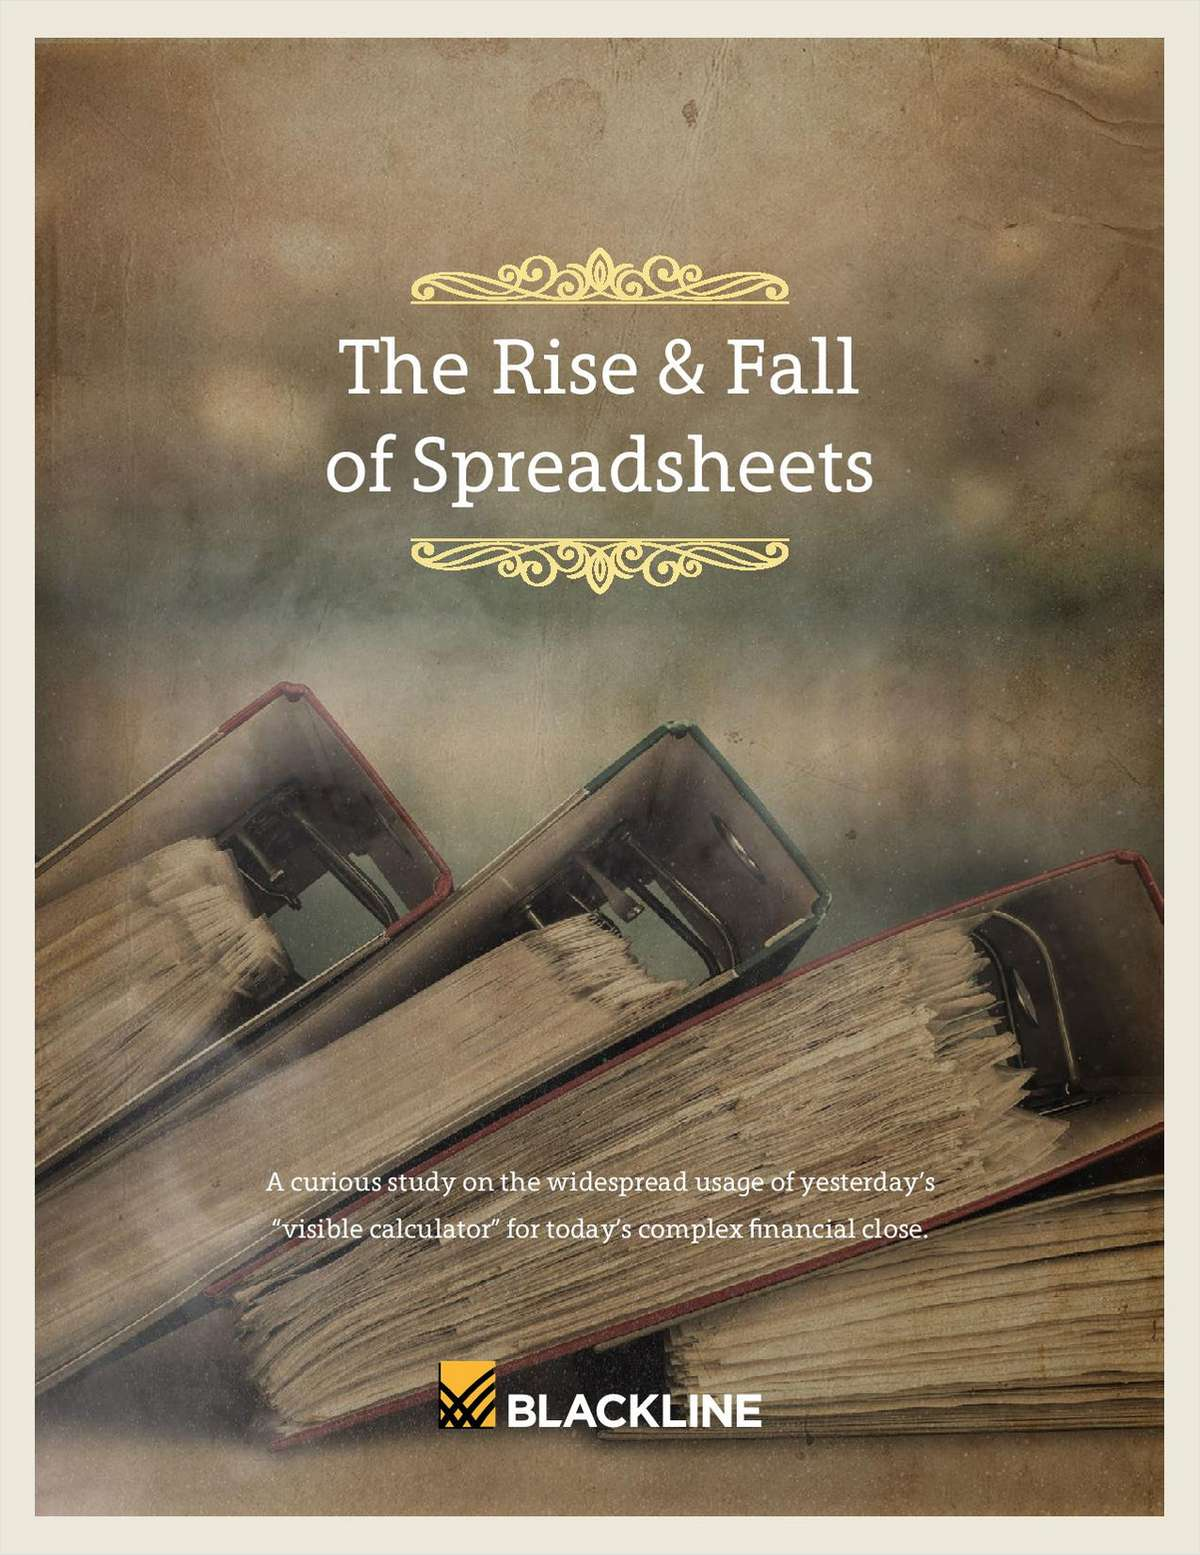 The Rise & Fall of Spreadsheets